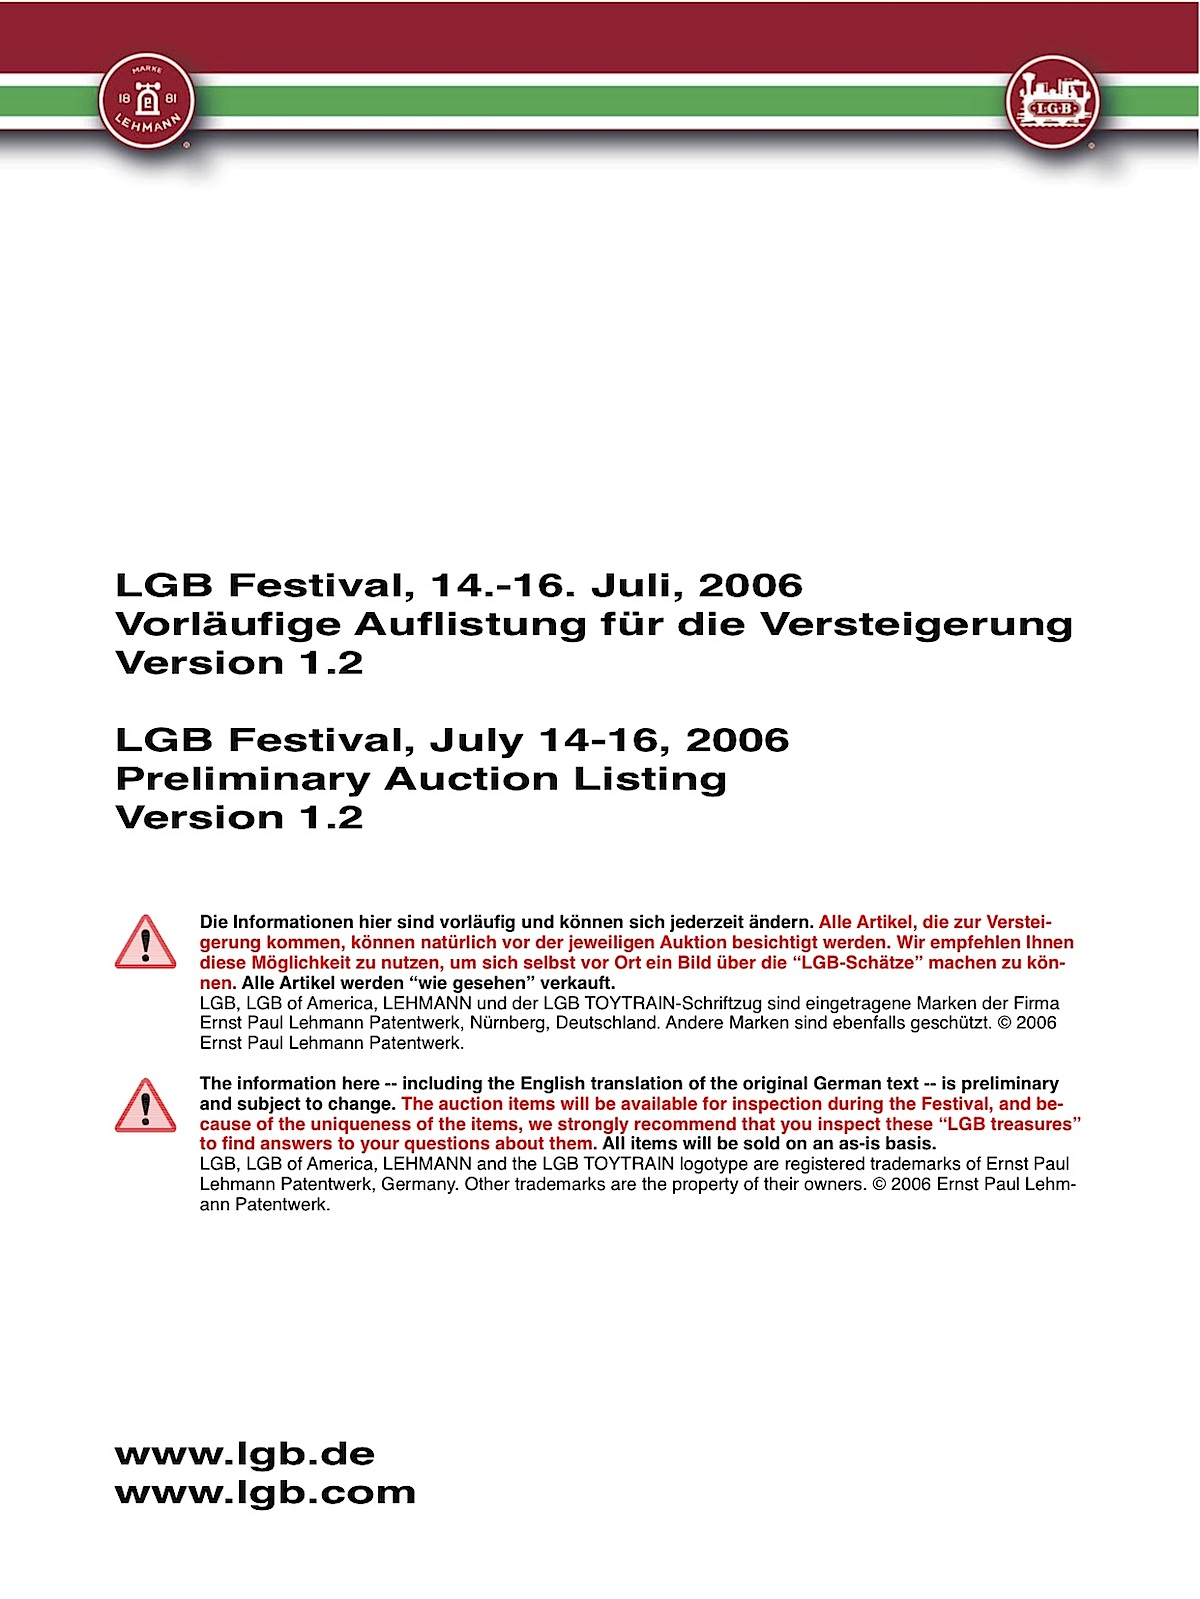 LGB Auktions-Auflistung, Juli 2006 (Auction listing July 2006)